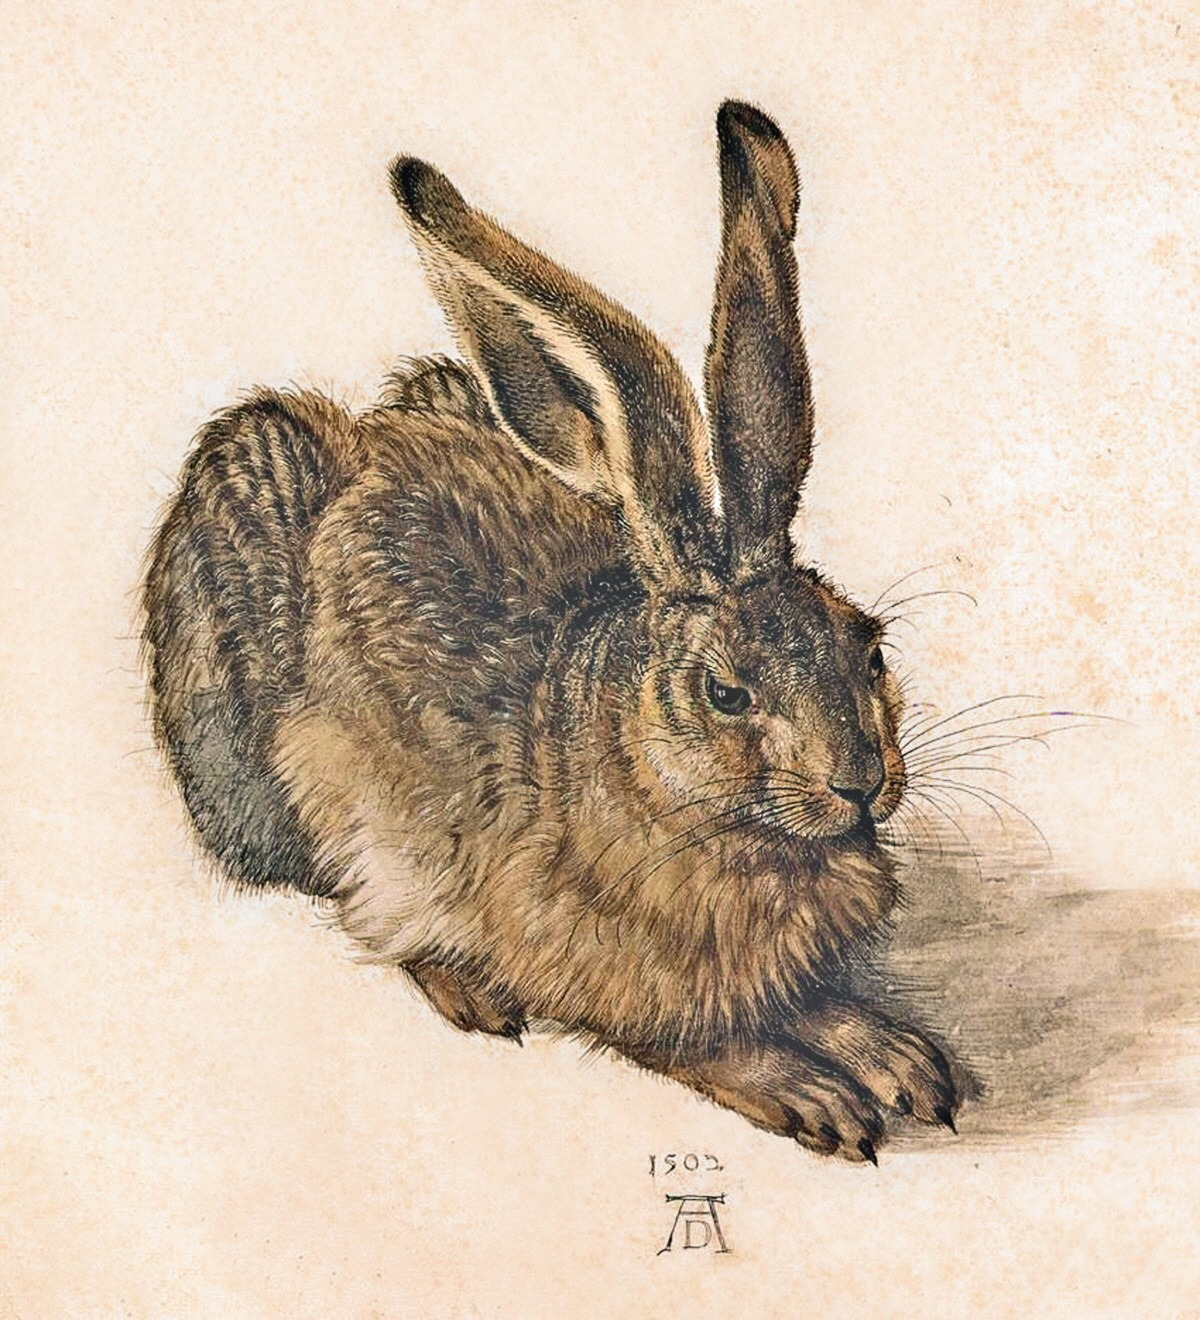 An exemplar of form:  Rabbit , by the German Renaissance artist Albrecht Durer. The life of the rabbit leaps off the page and into our imagination, thanks to Durer's gift for expressing meaningful shapes.